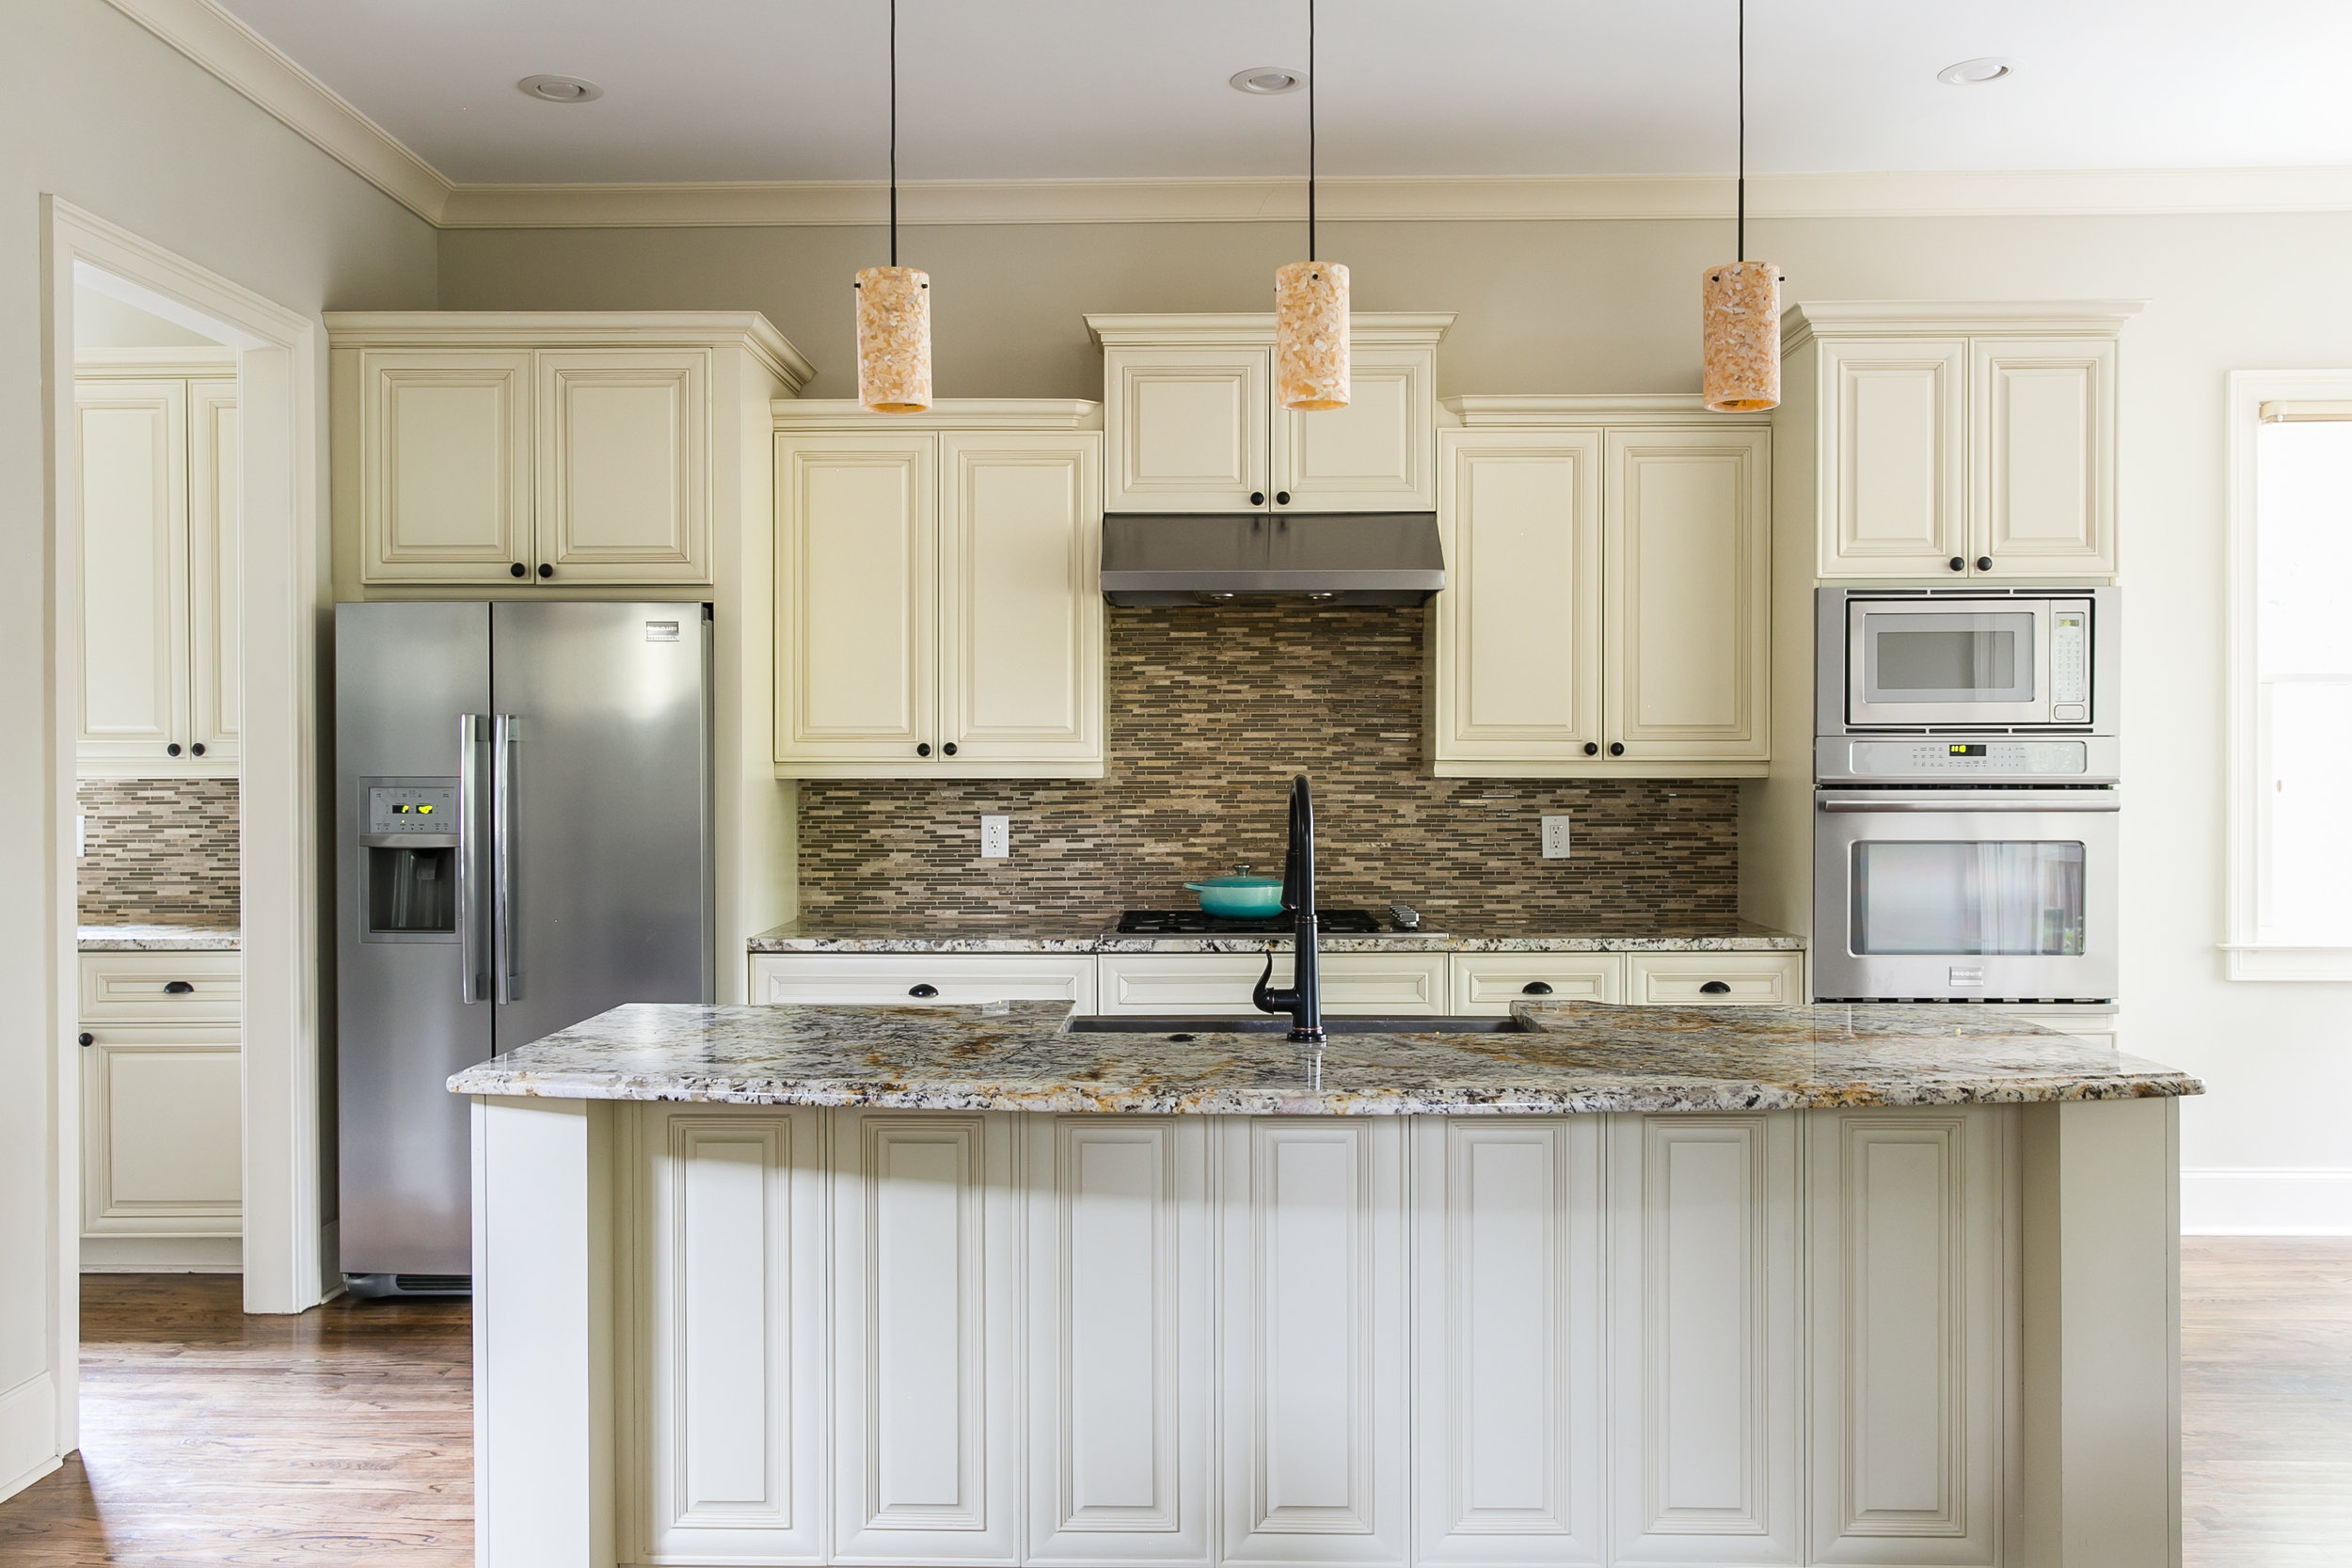 125 Mcclean-Kitchen 2.jpg